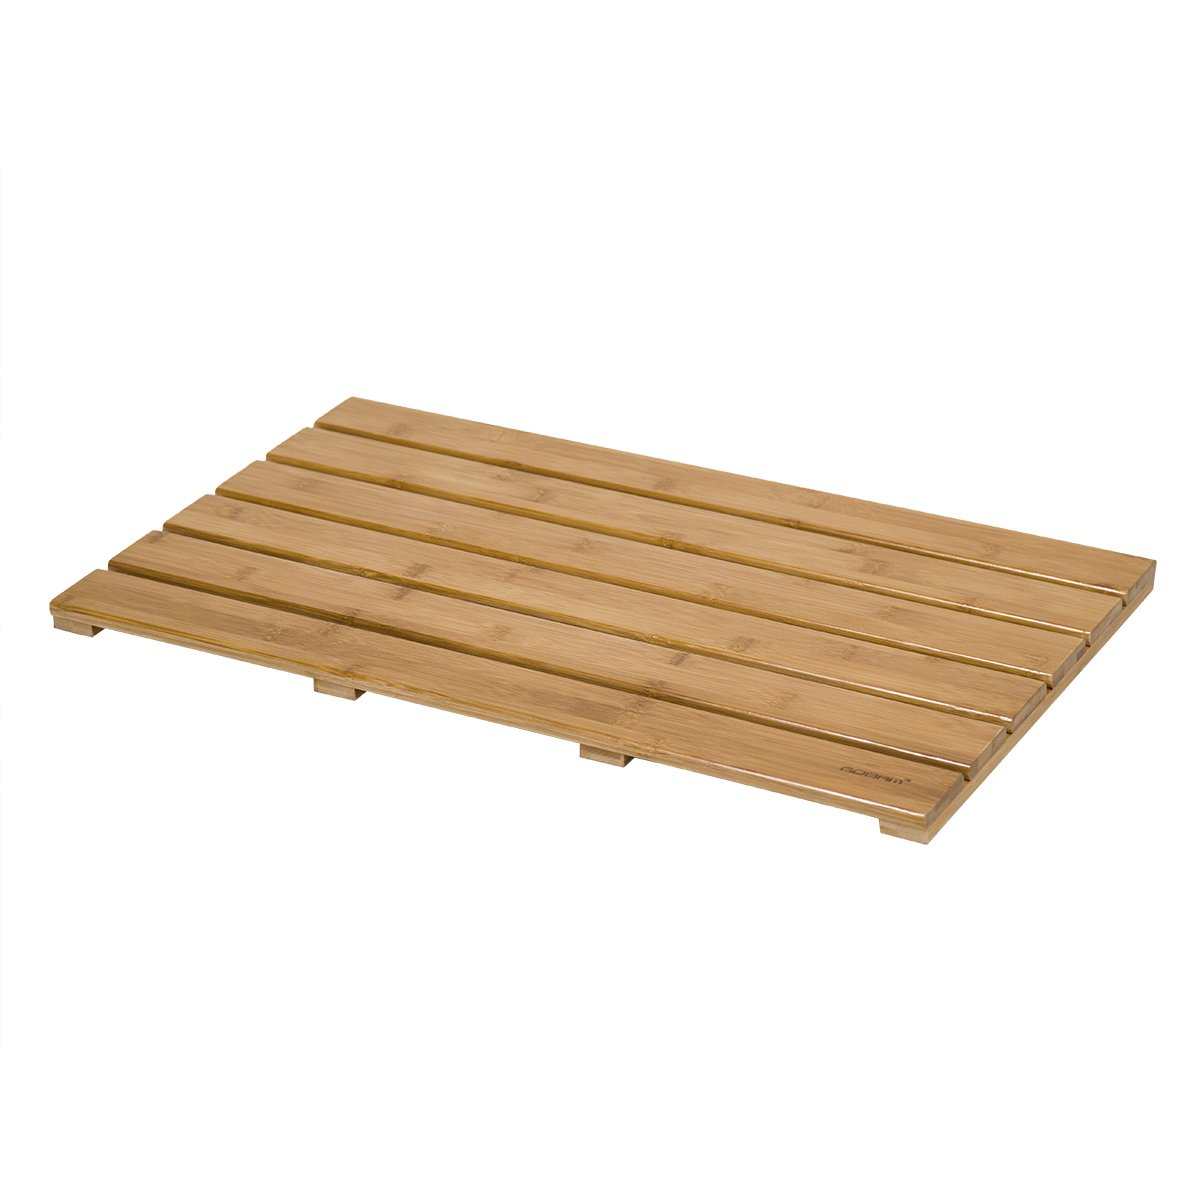 GOBAM Large Bath Mats Shower Mat Bathroom Floor Mat Non Slip for Spa Tub and Kitchen, Bamboo (26 x 15.8 x 1.3 inches)